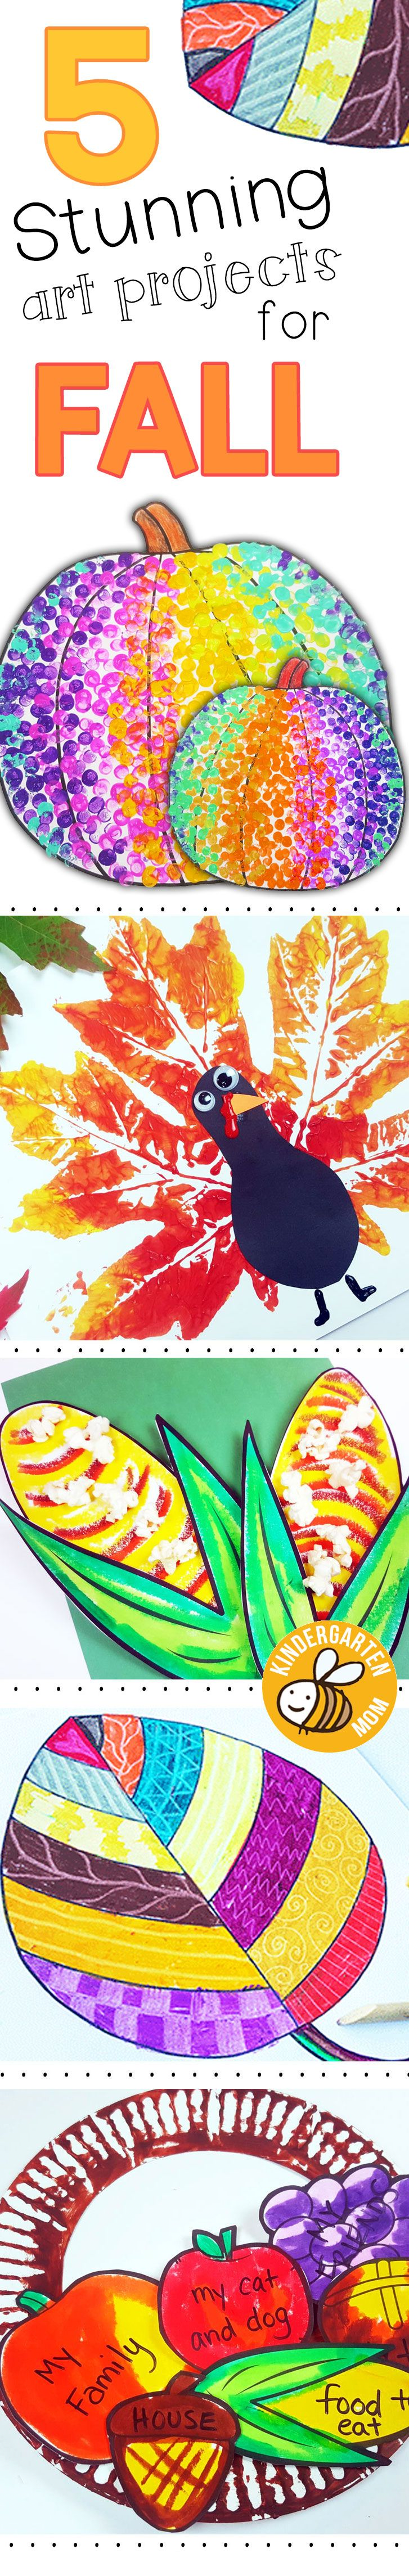 Thanksgiving Art Projects For Kids   Kindergarten   Manualidades